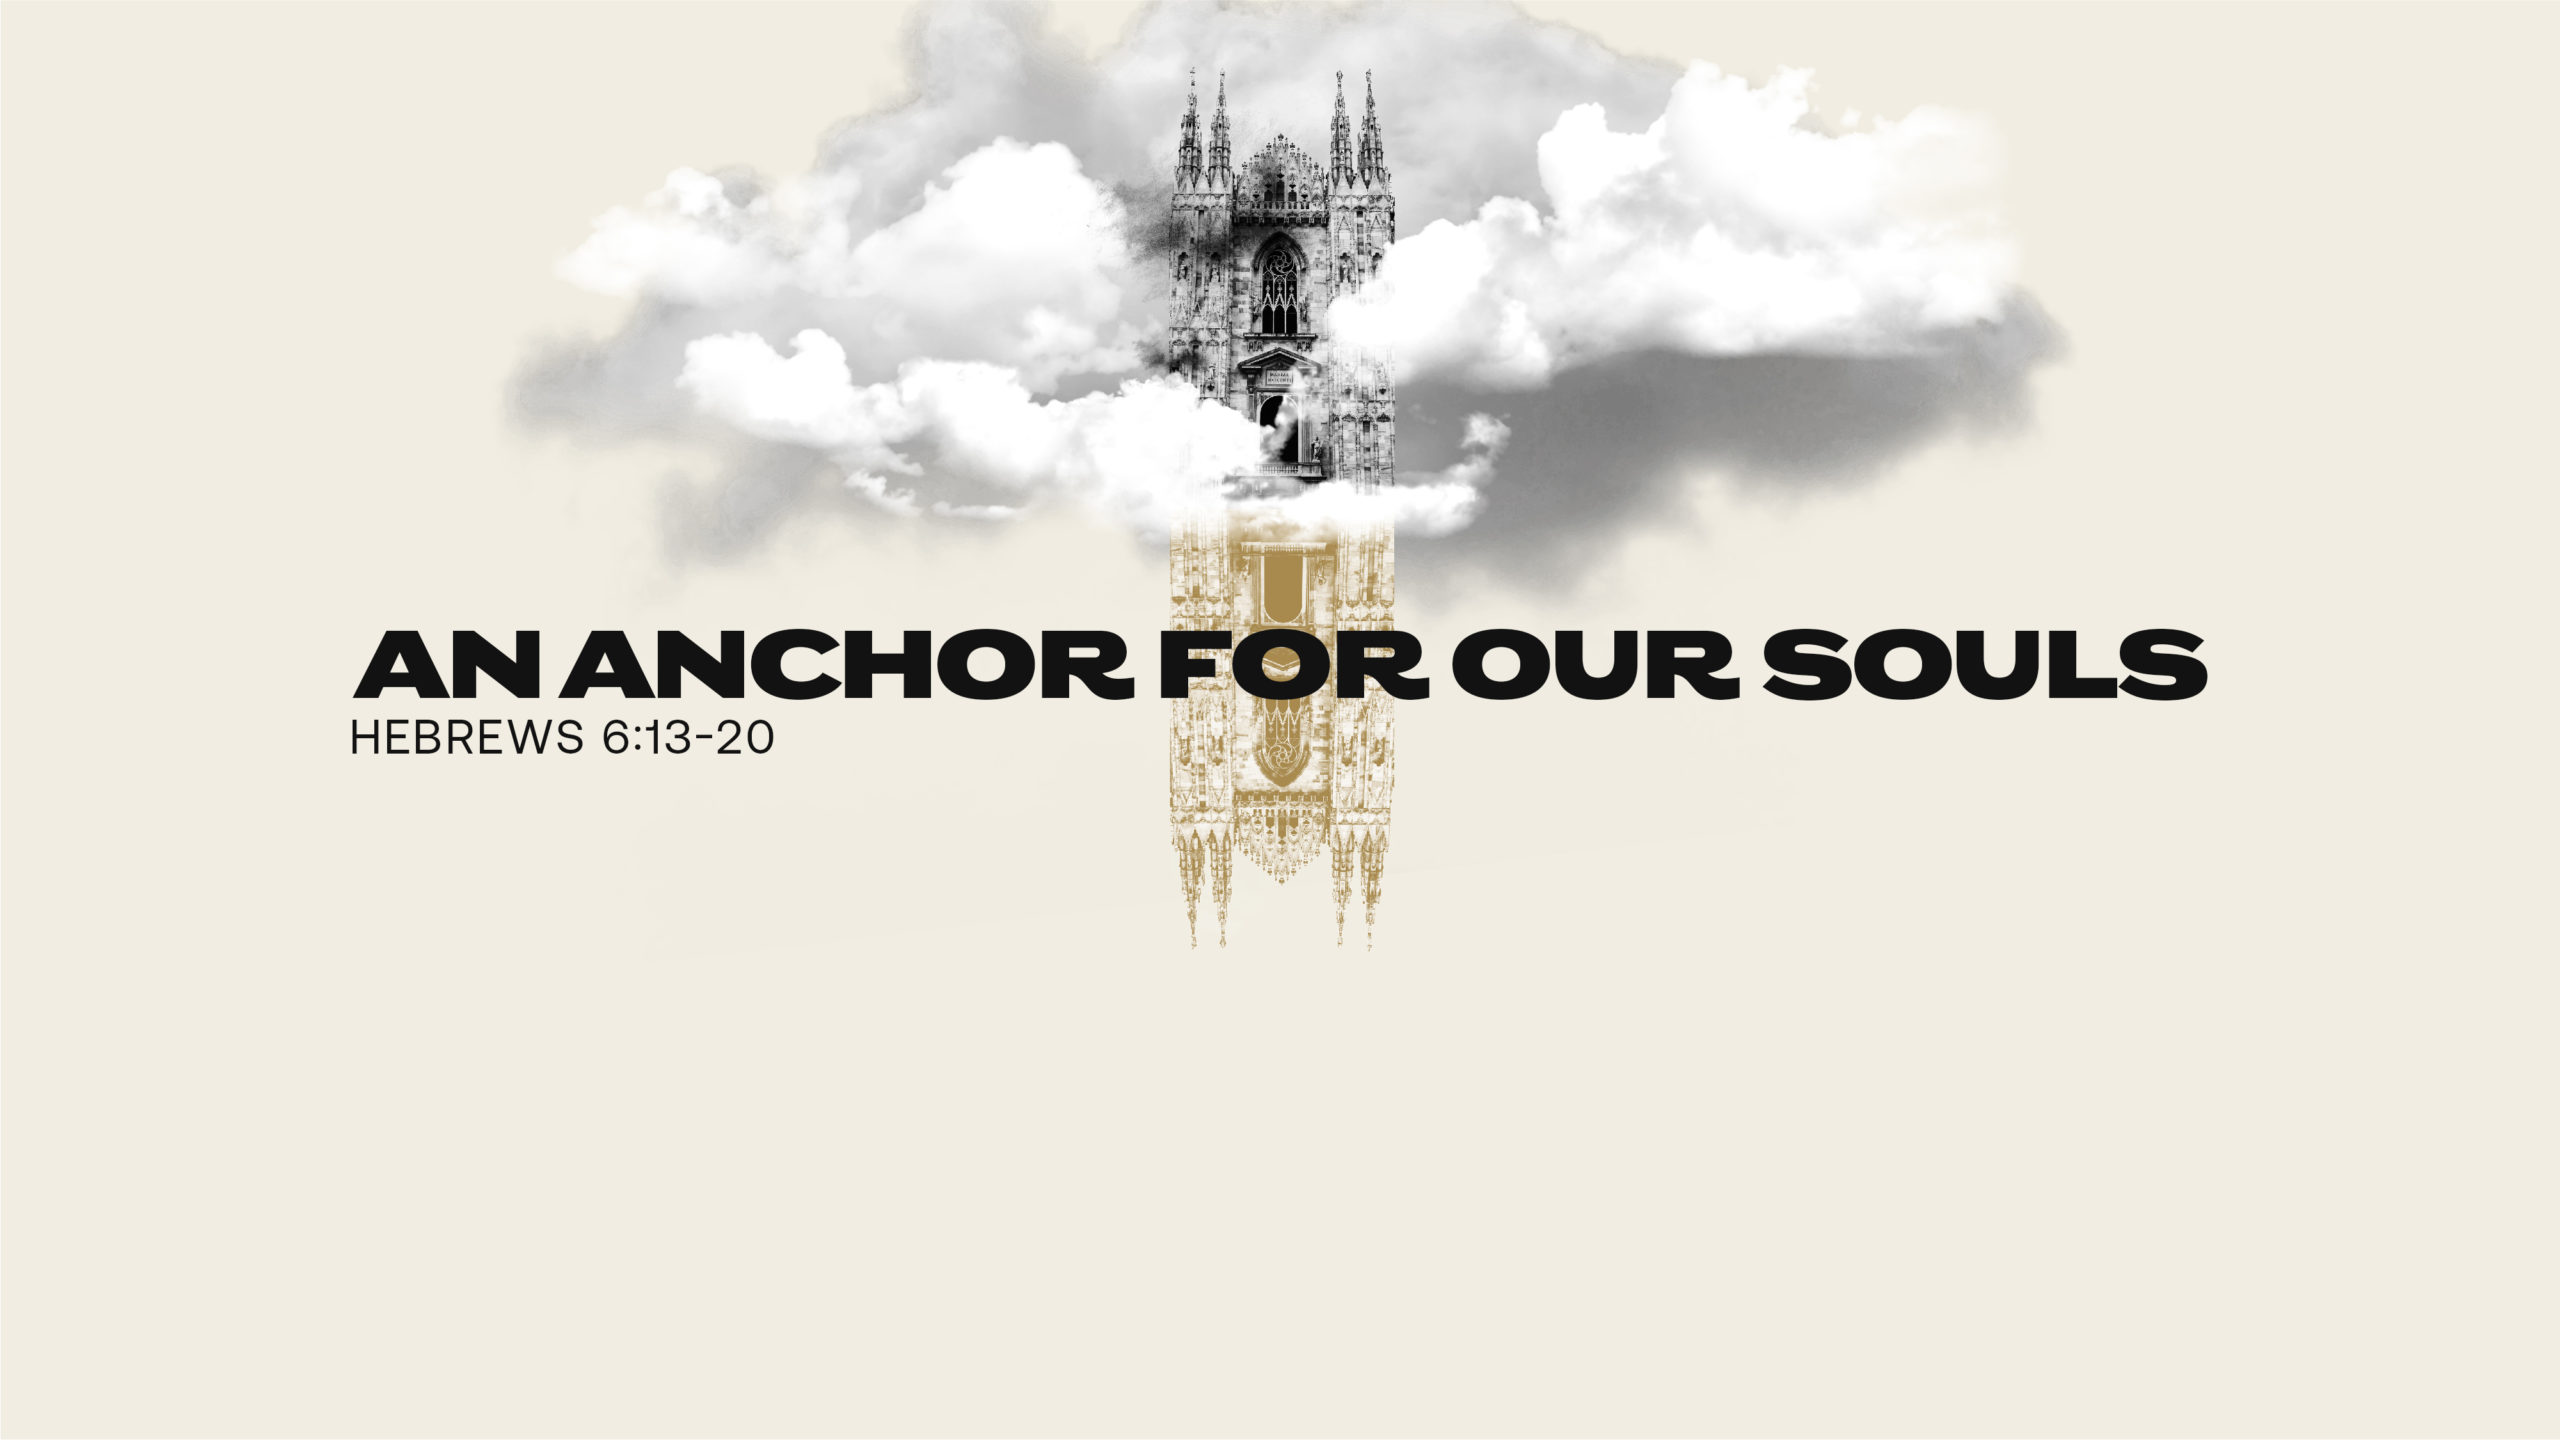 An Anchor for Our Souls